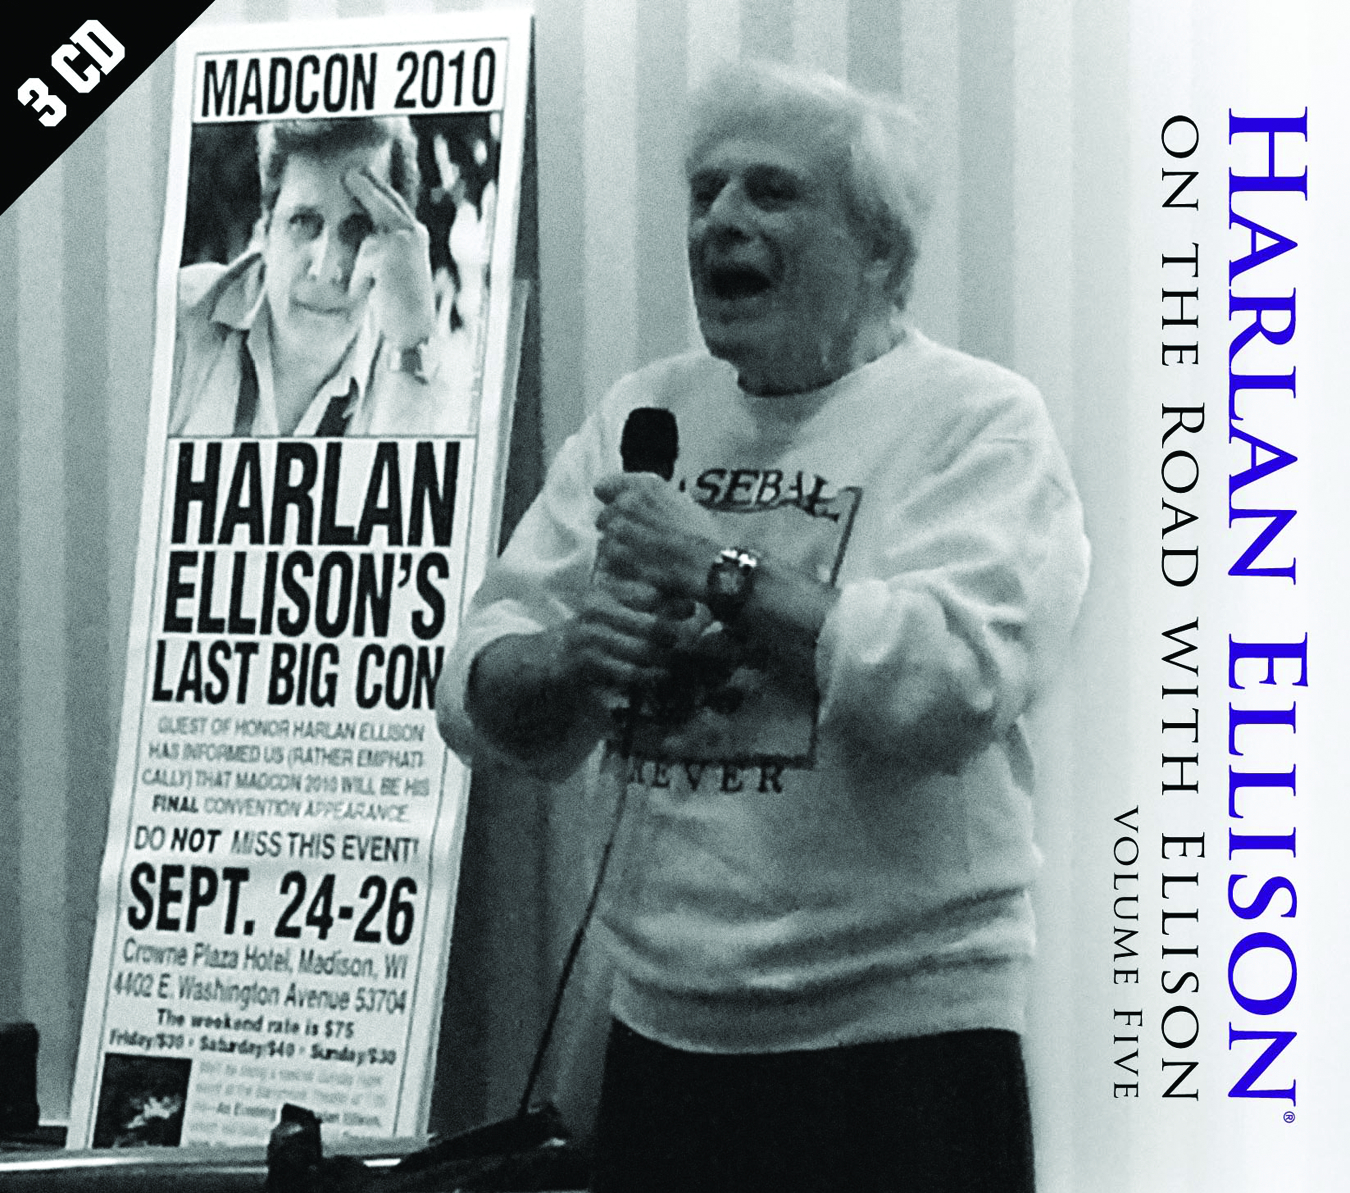 ON THE ROAD WITH HARLAN ELLISON CD VOL 05